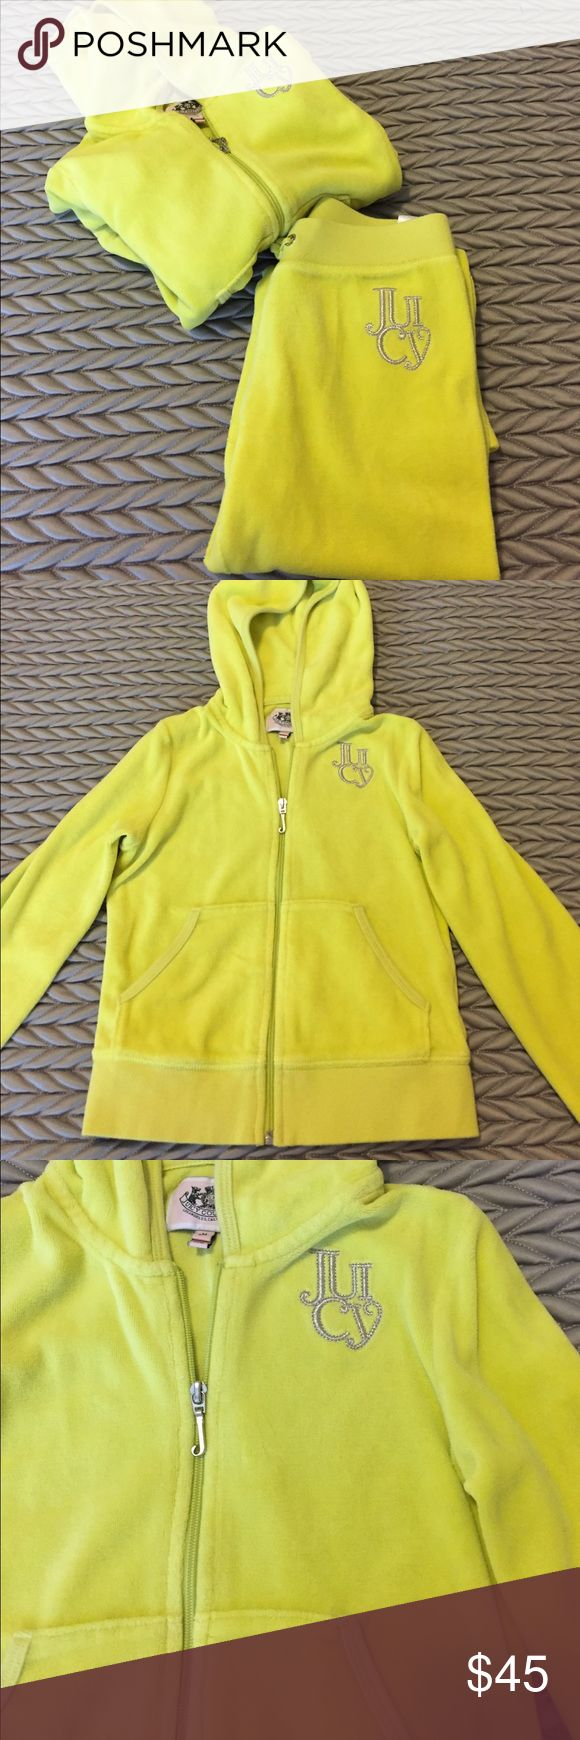 Juicy couture girls 2 piece sweatsuit Yellow, juicy couture embroidered velour sweatsuit. Both pieces included, matching set. Perfect condition, only worn a couple of times. Size medium 6/7, both the pants and the jacket. Juicy Couture Matching Sets